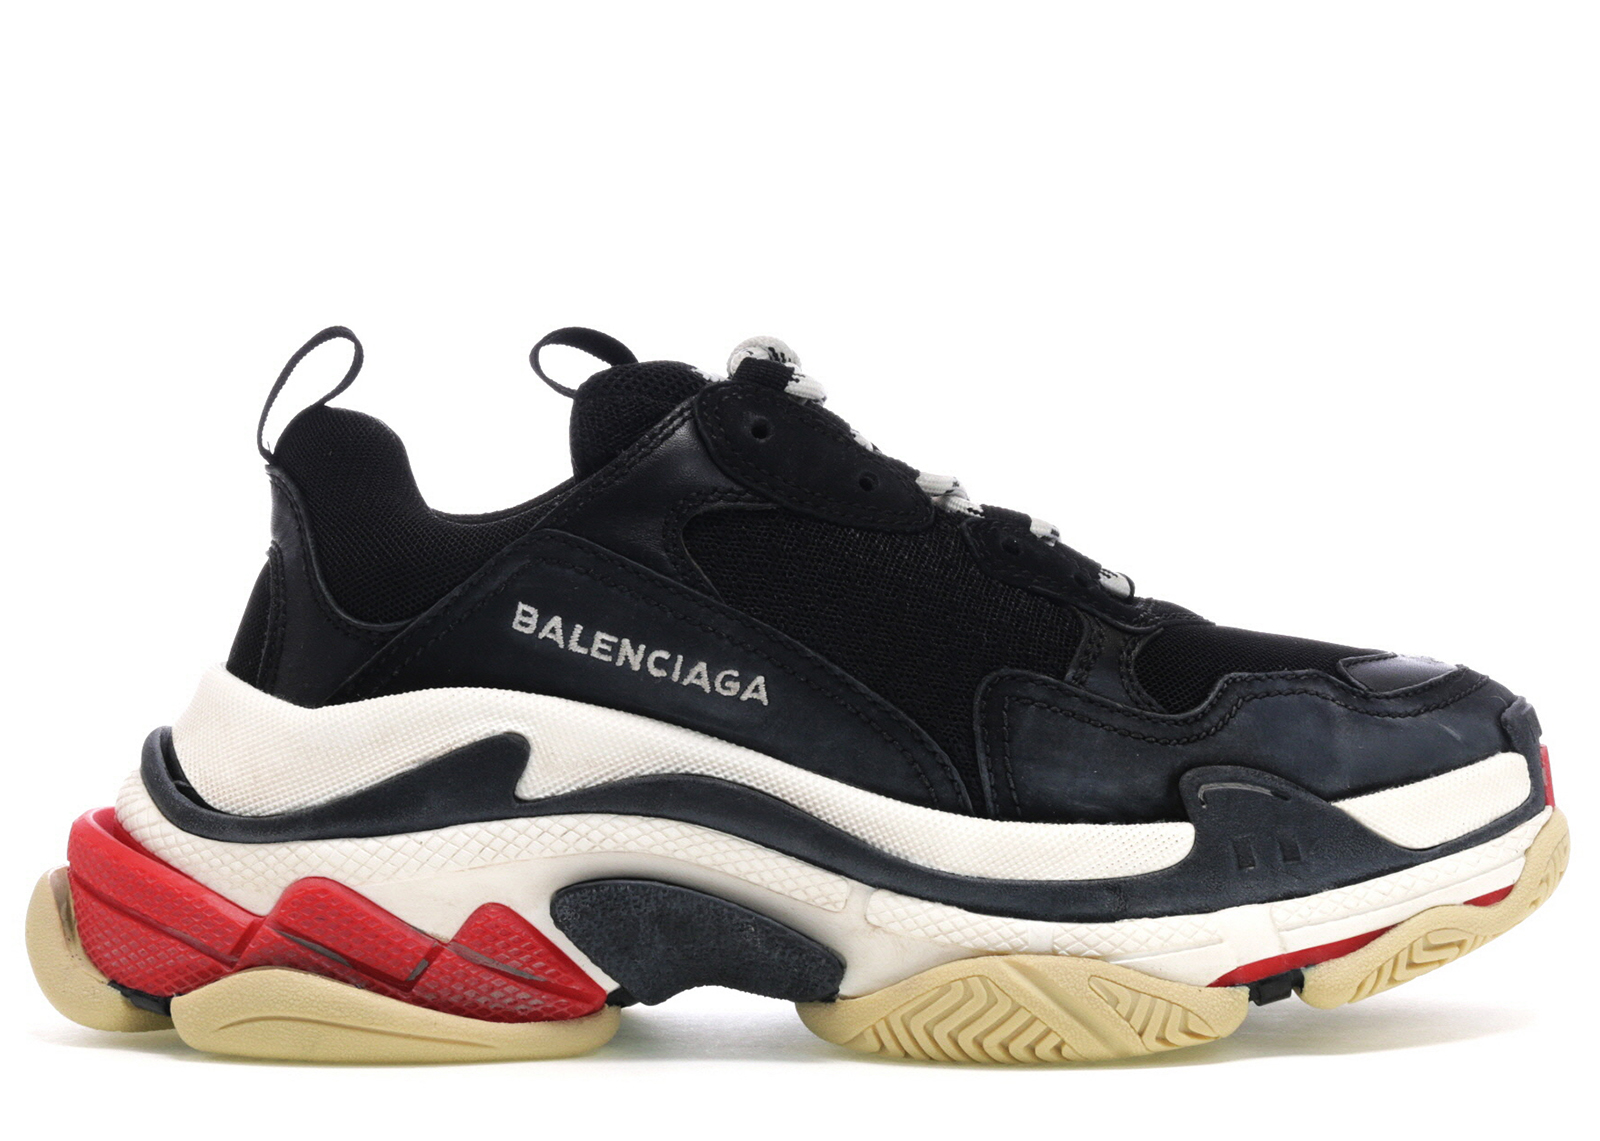 Red and Black Triple S Sneakers Balenciaga j1nge9